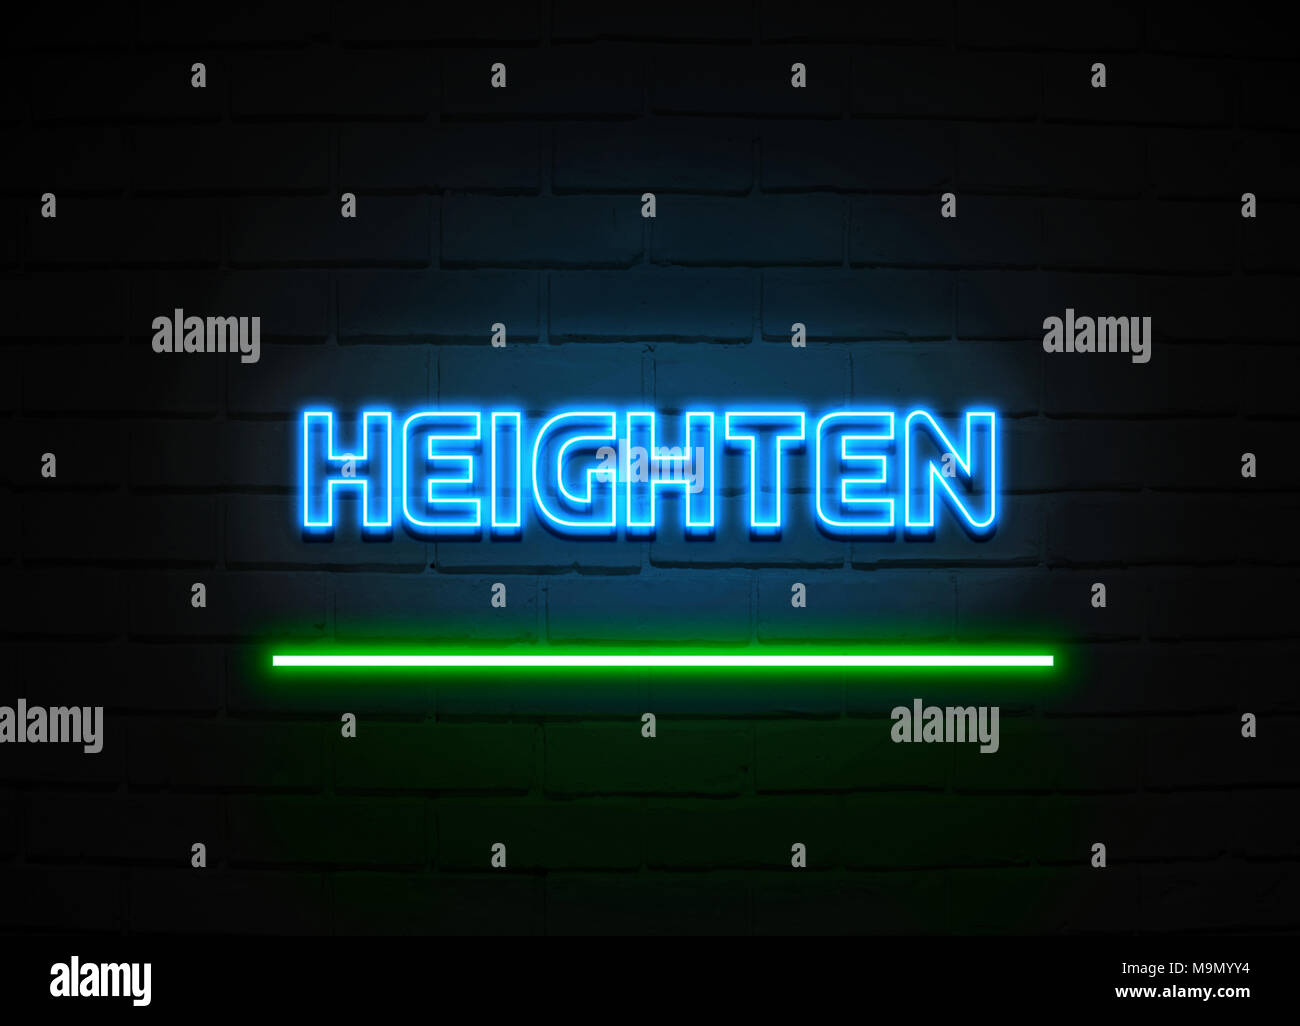 Heighten neon sign - Glowing Neon Sign on brickwall wall - 3D rendered royalty free stock illustration. - Stock Image